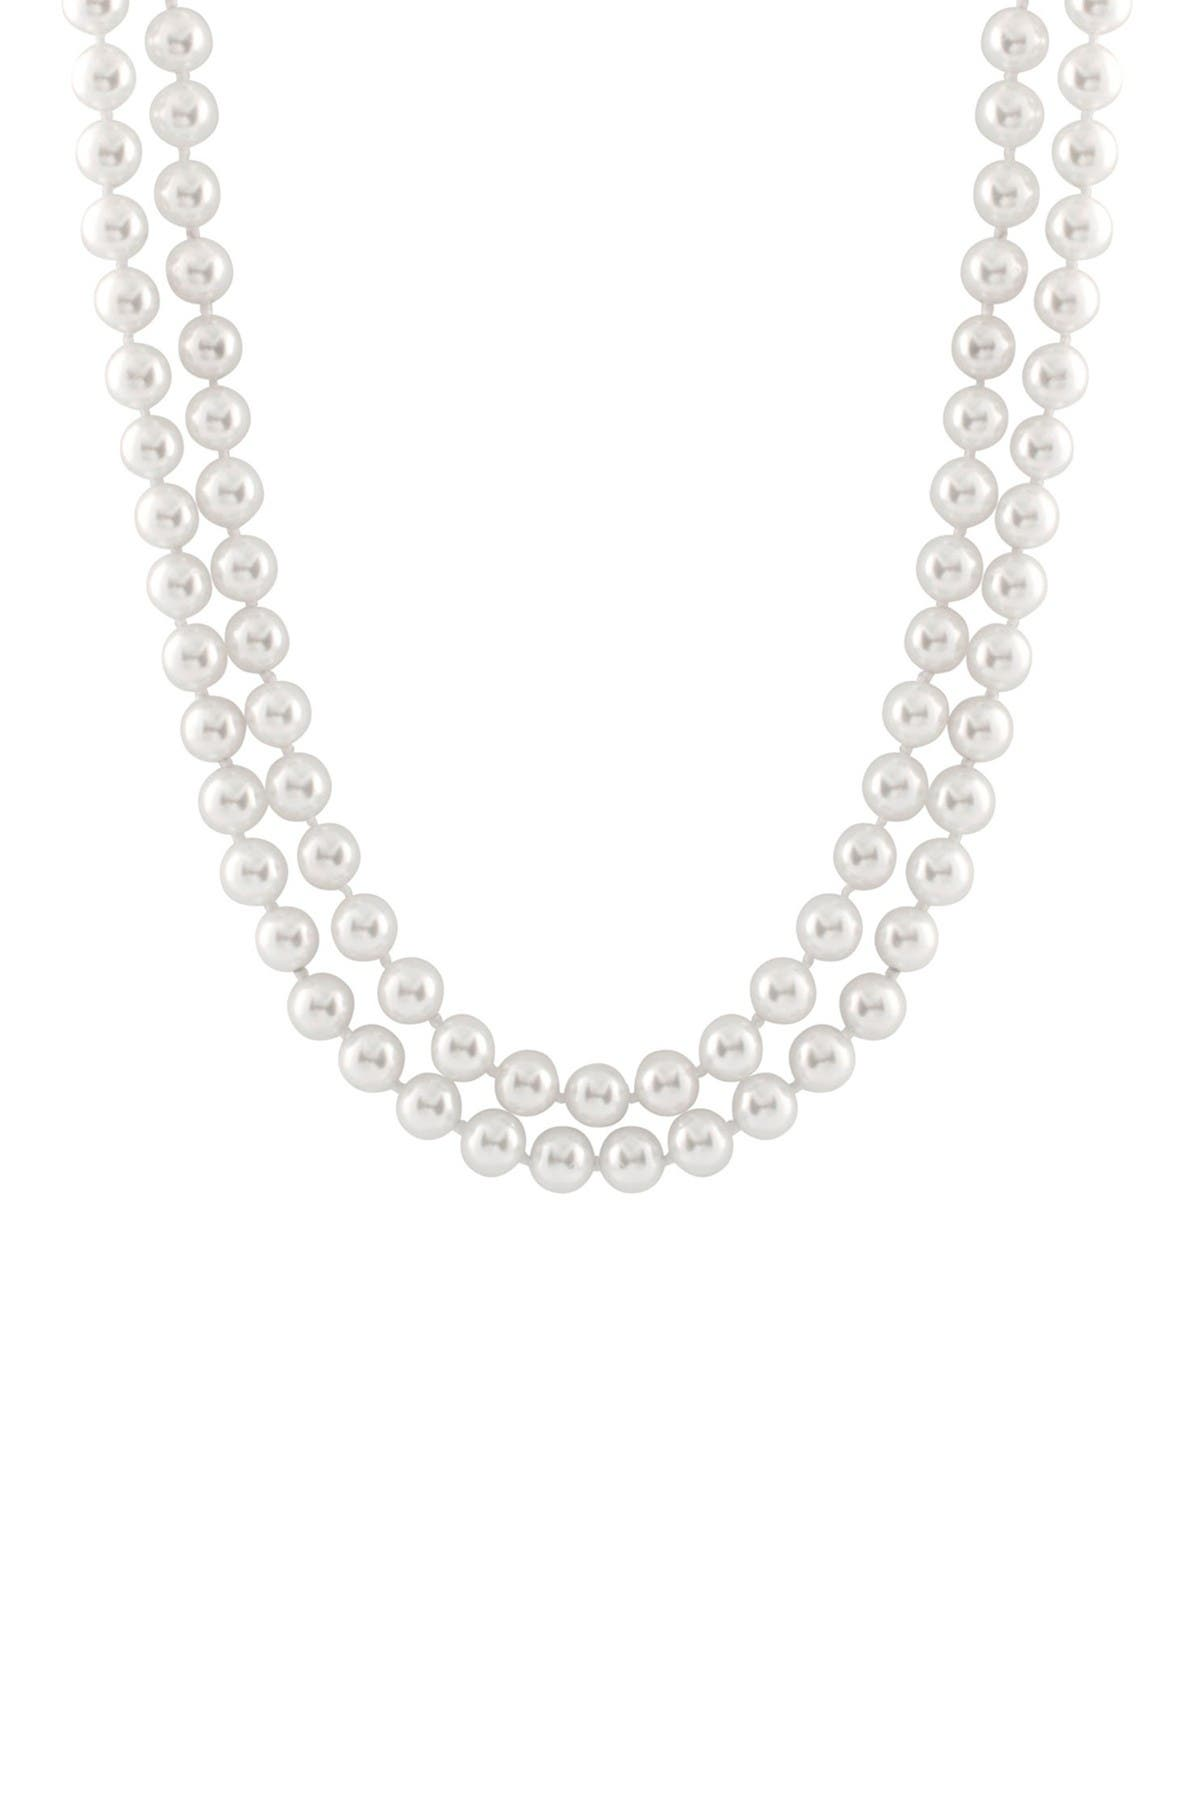 Image of Splendid Pearls Double Row Shell Pearl Necklace